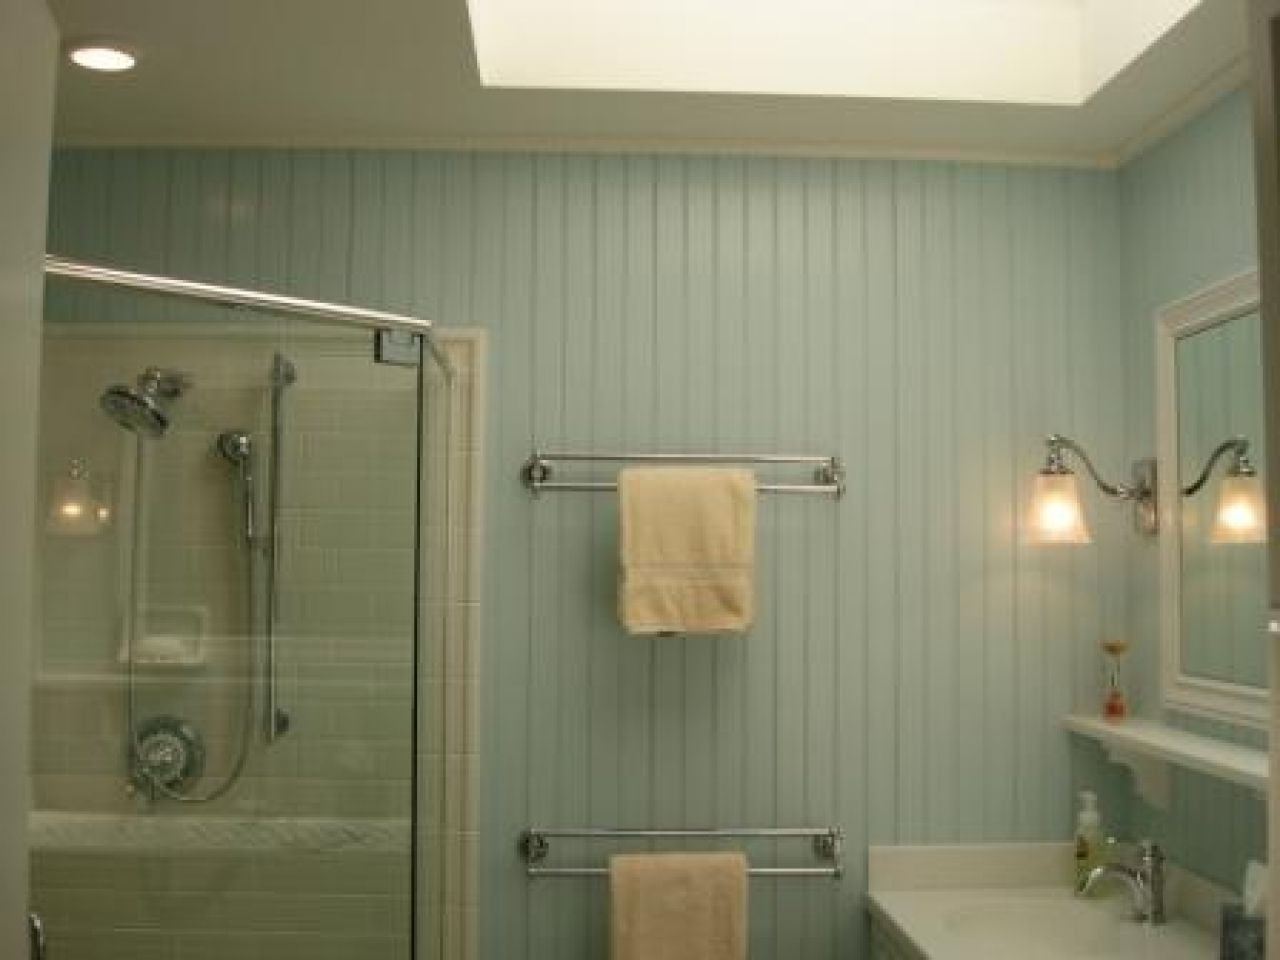 https://images.search.yahoo.com/images/view | Bathroom Remodel Ideas ...